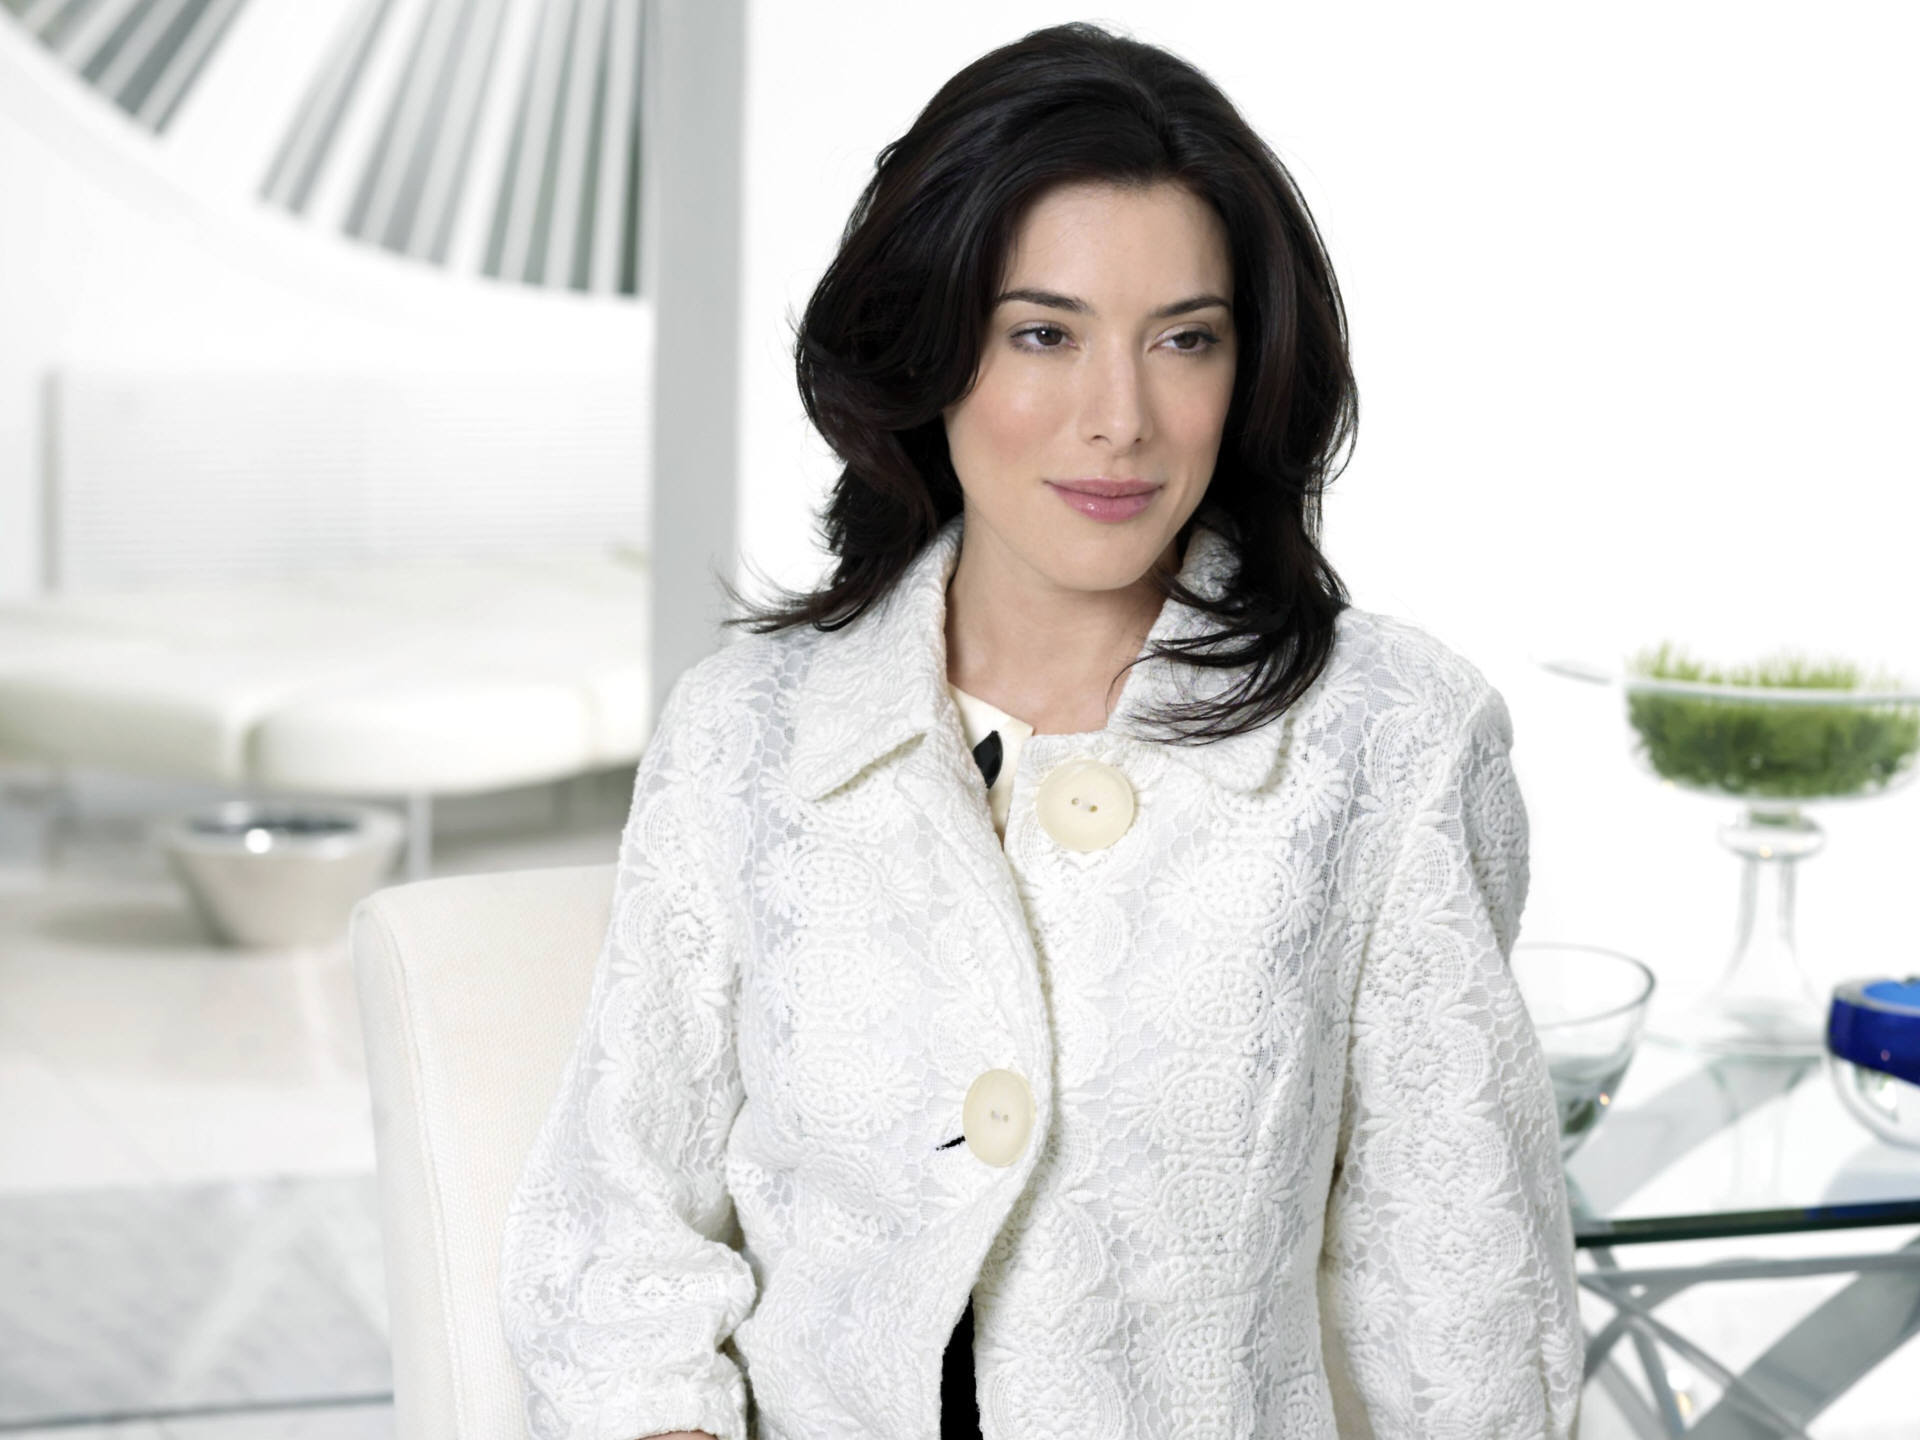 Jaime Murray High Quality Wallpapers